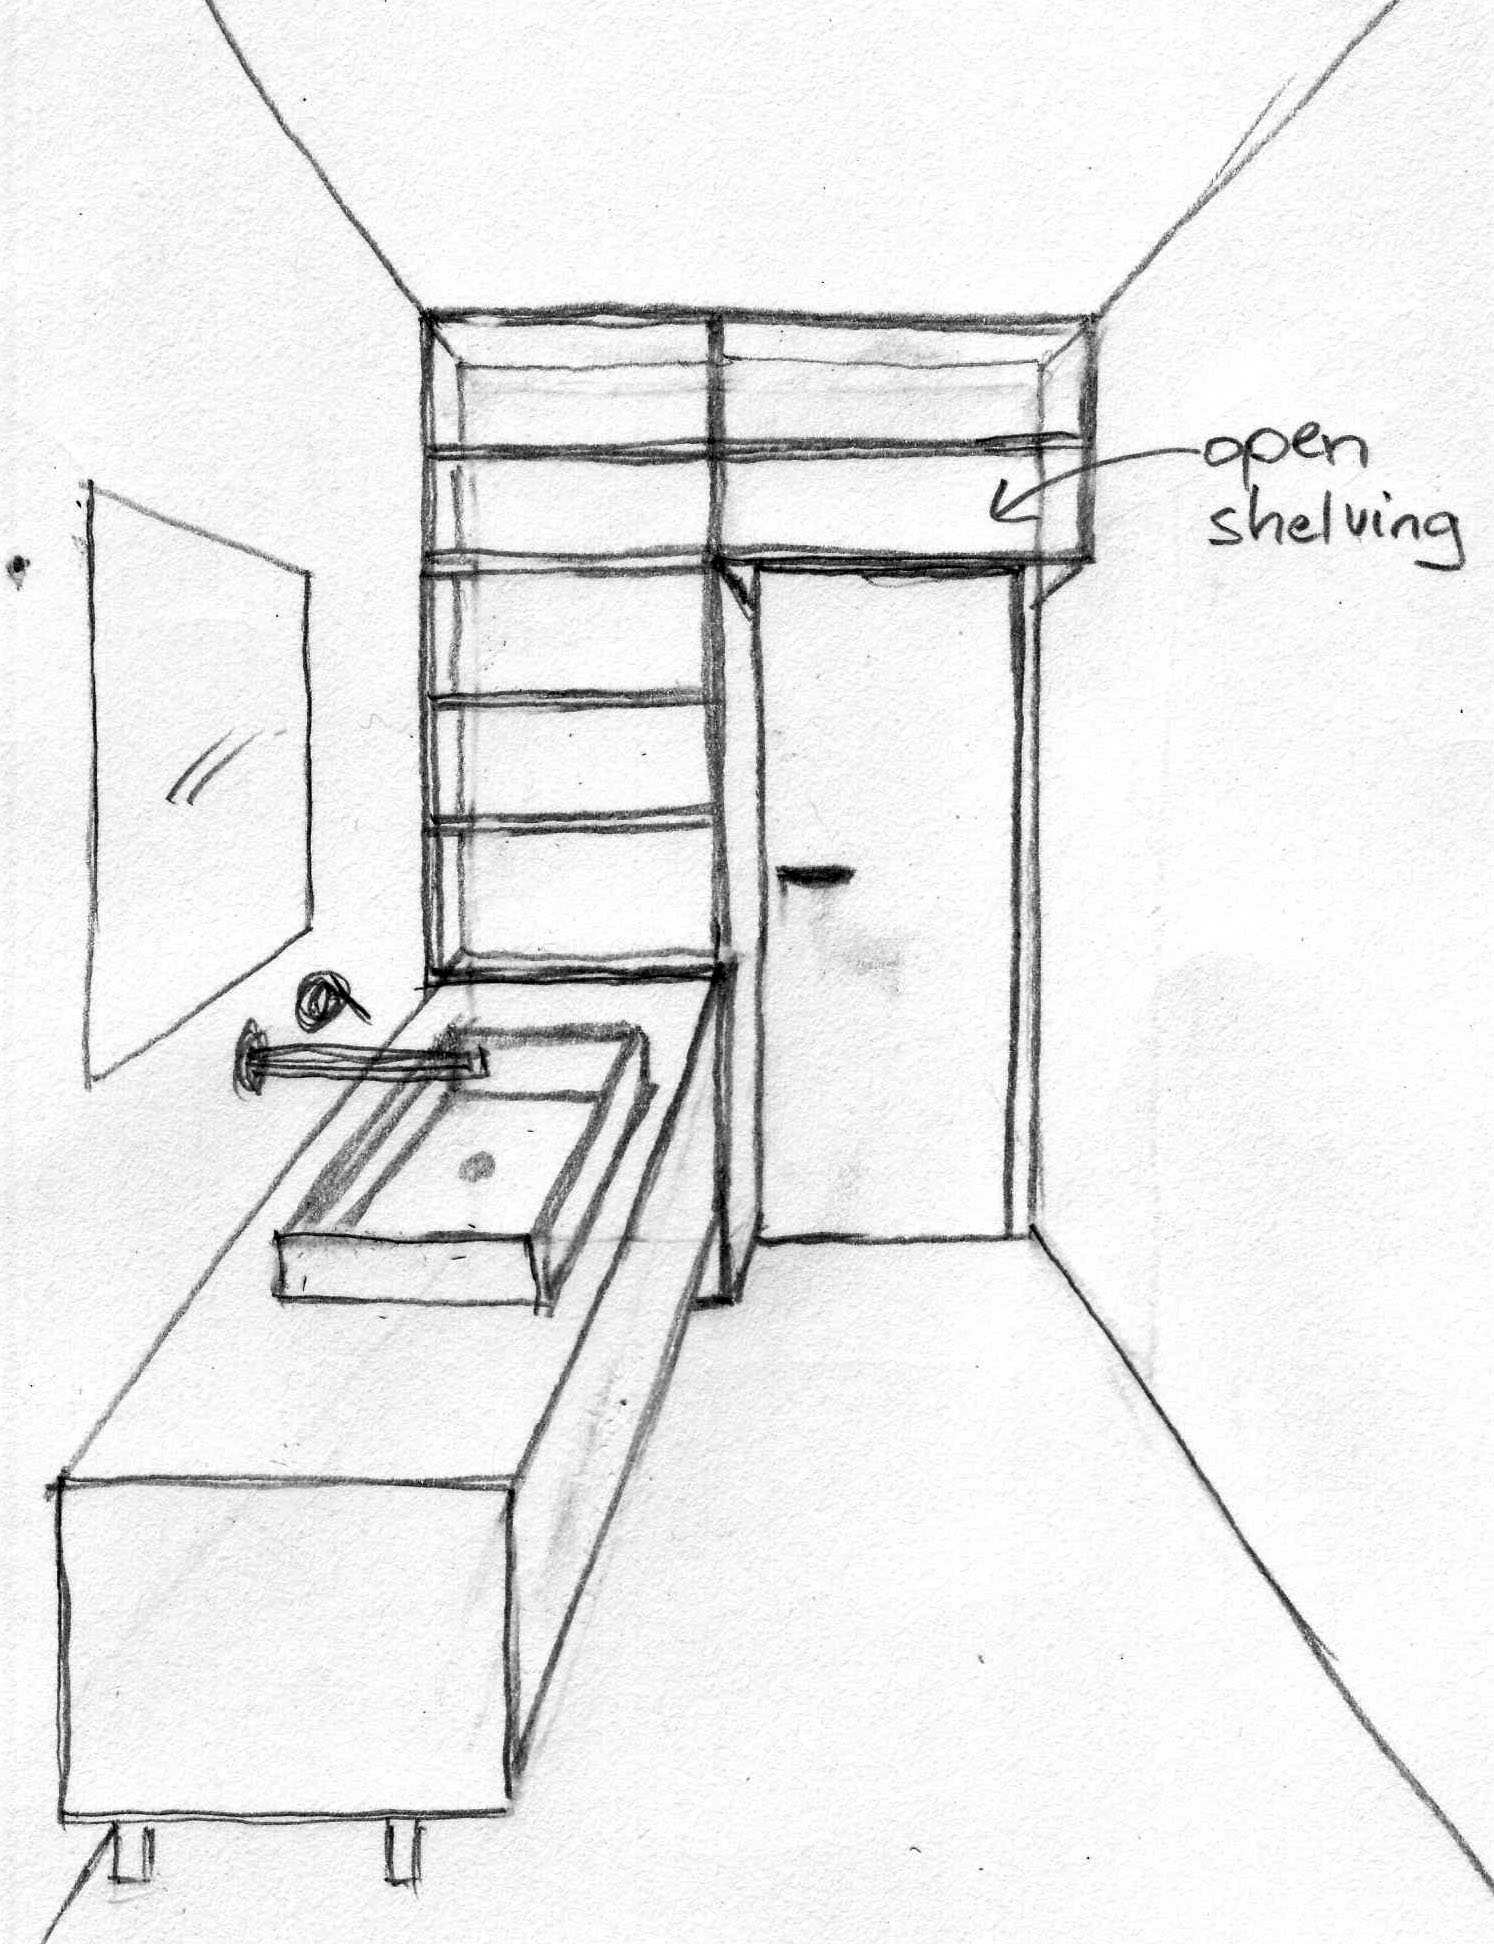 Sketch Of A Bathroom 28 Images Hand Drawn Sketch Linear Sketch Of An Interior Part Of The